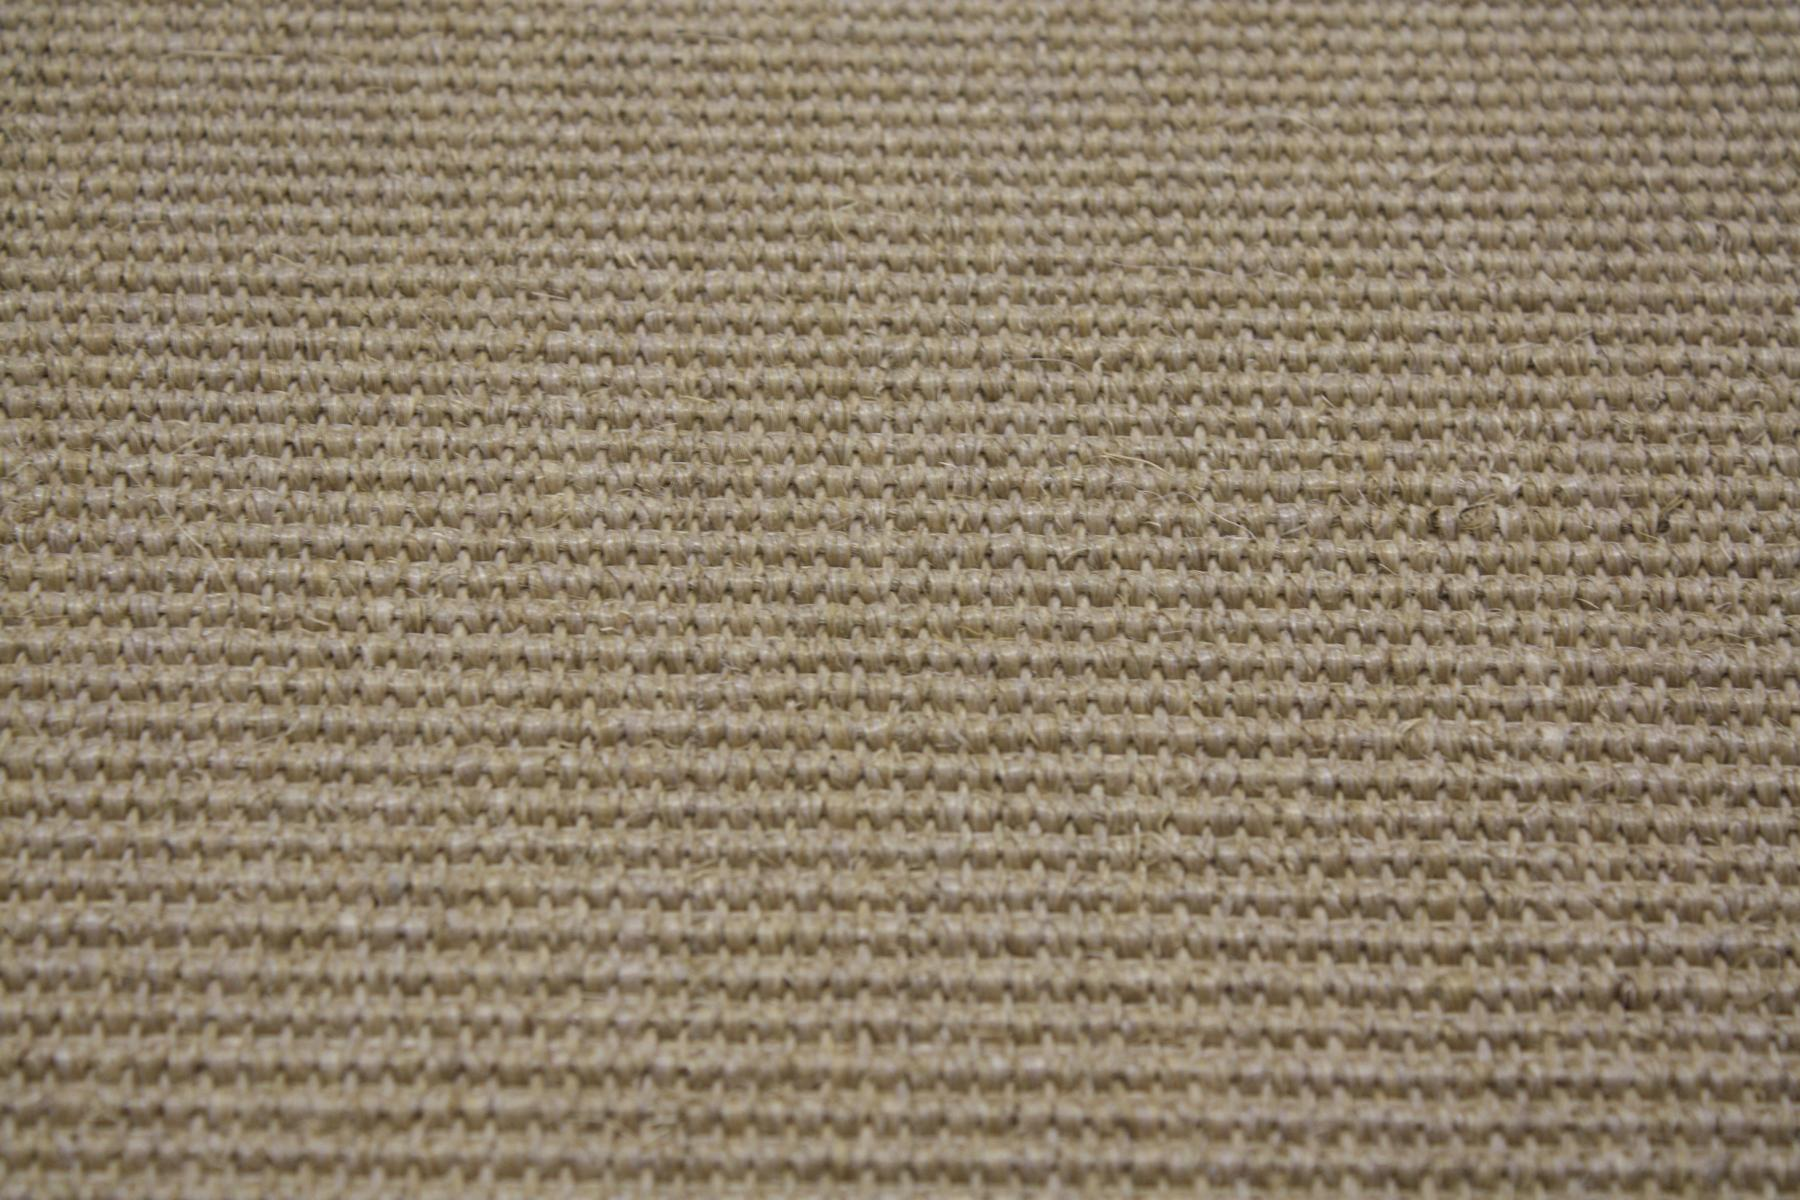 sisal teppich umkettelt creme 150x200cm 100 sisal gekettelt ebay. Black Bedroom Furniture Sets. Home Design Ideas